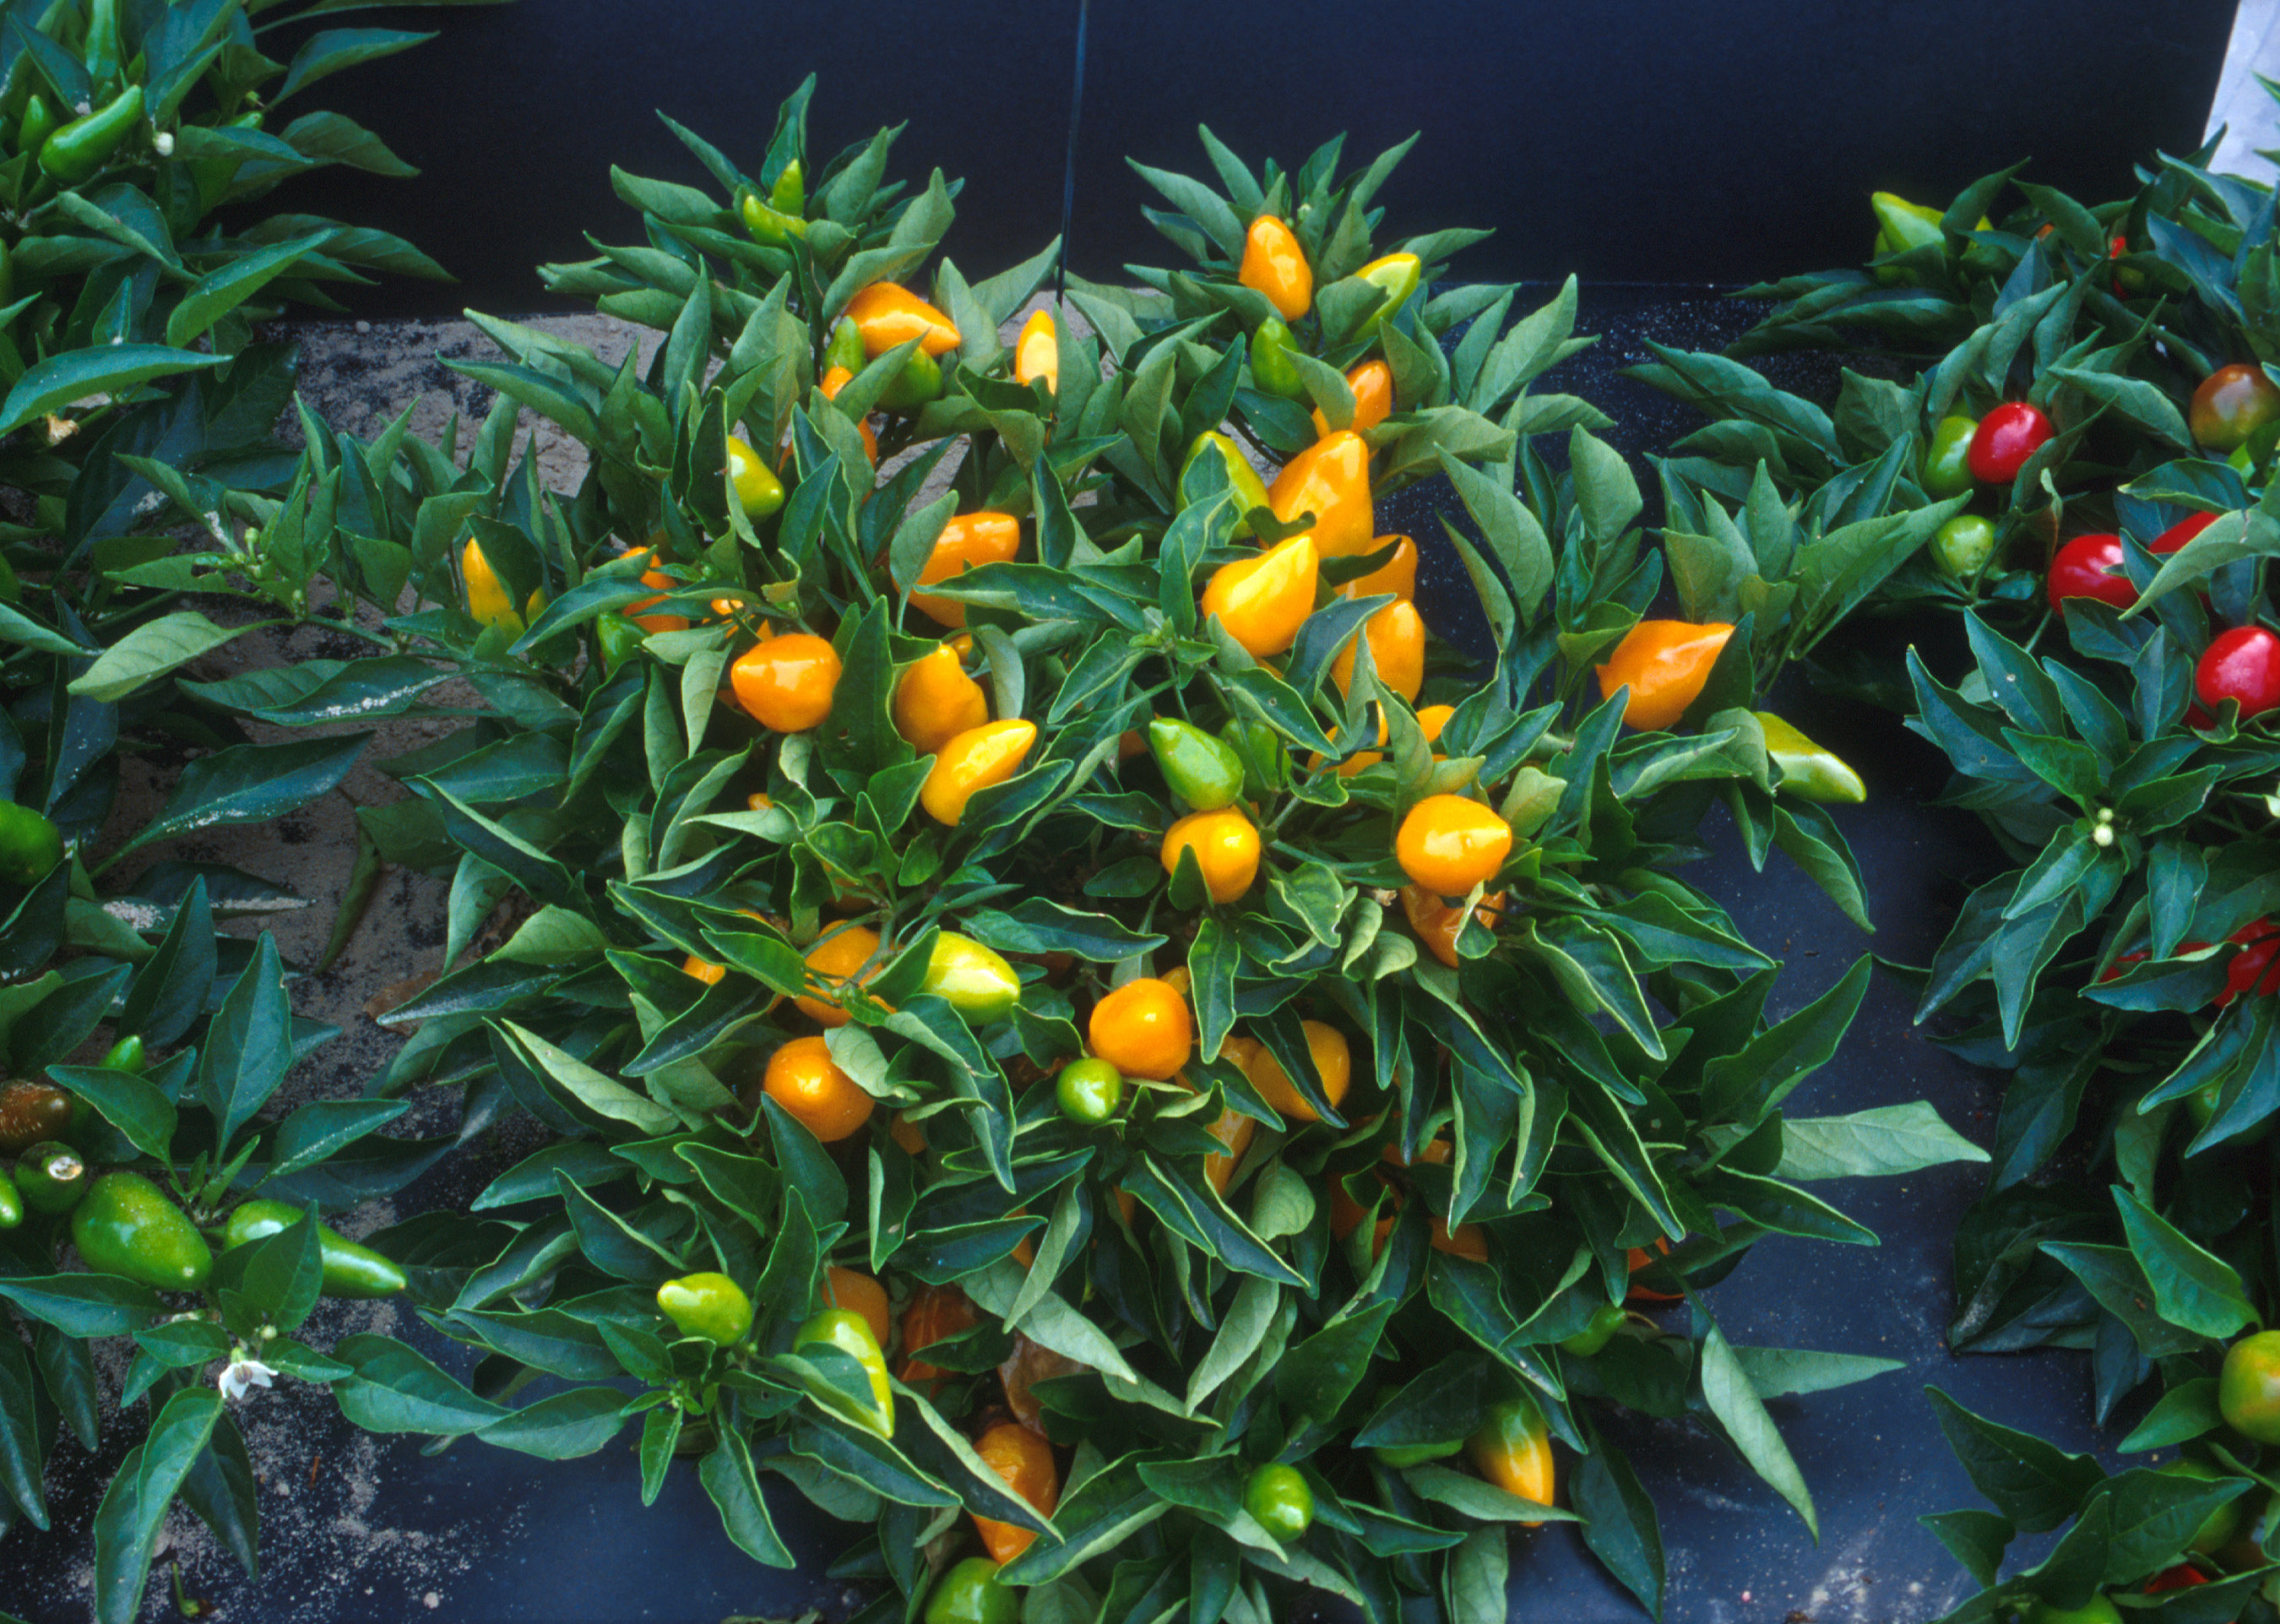 File:compact orange pepper plants